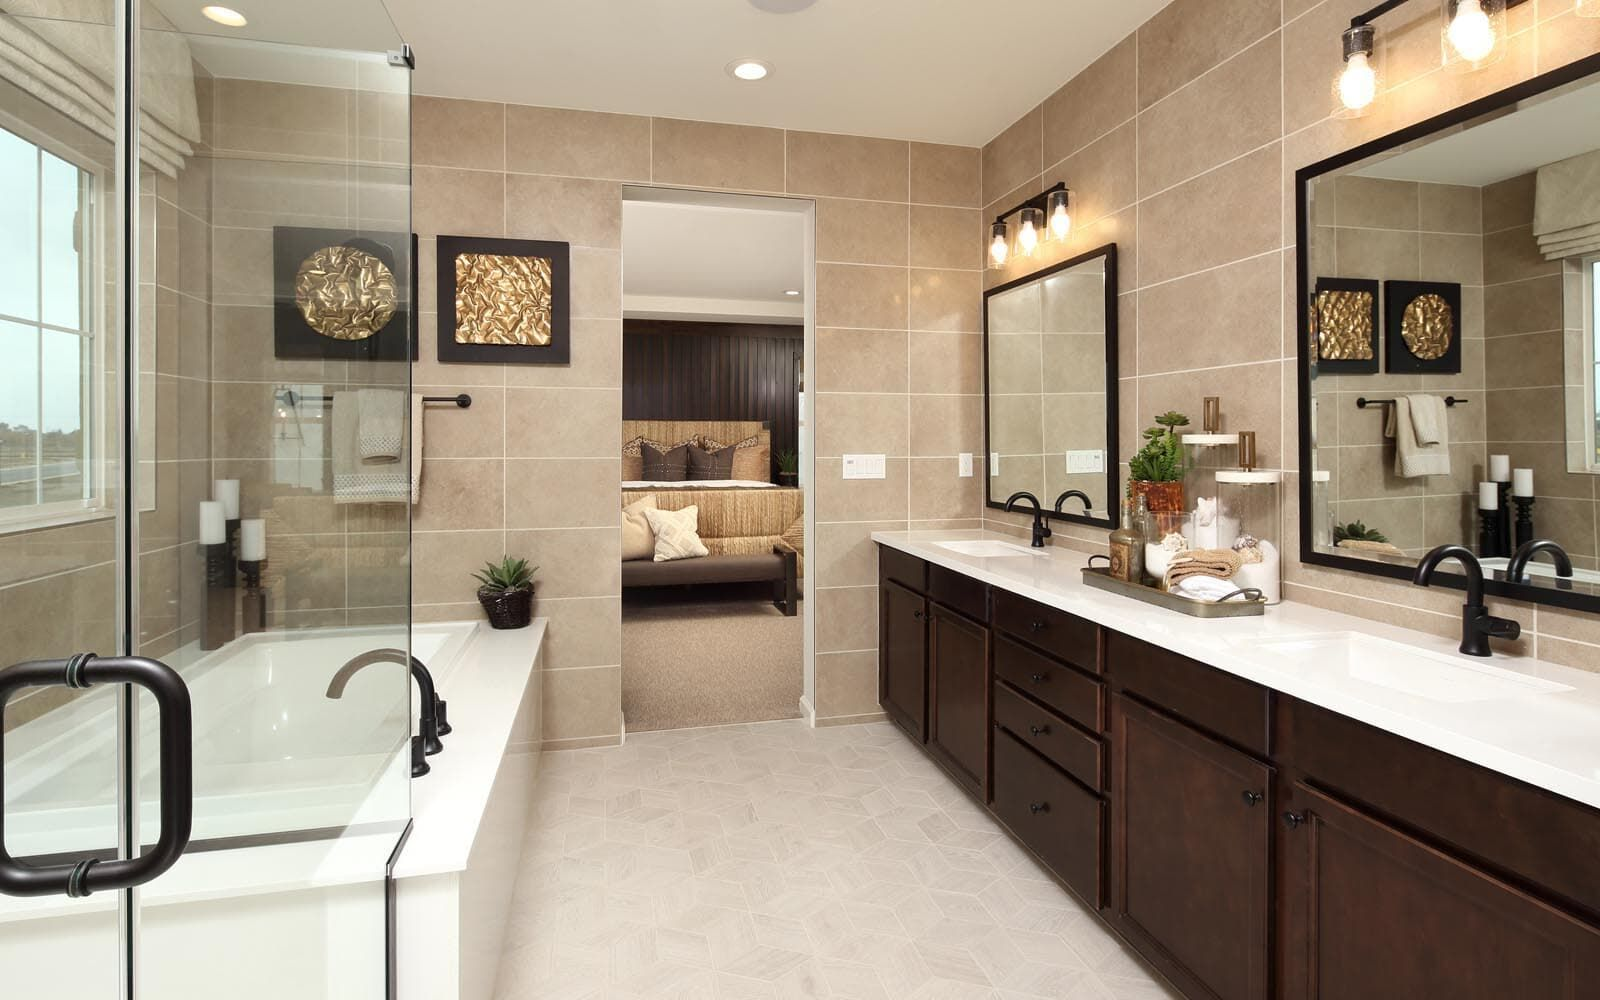 Bathroom featured in the Residence 5 By Brookfield Residential  in Oakland-Alameda, CA